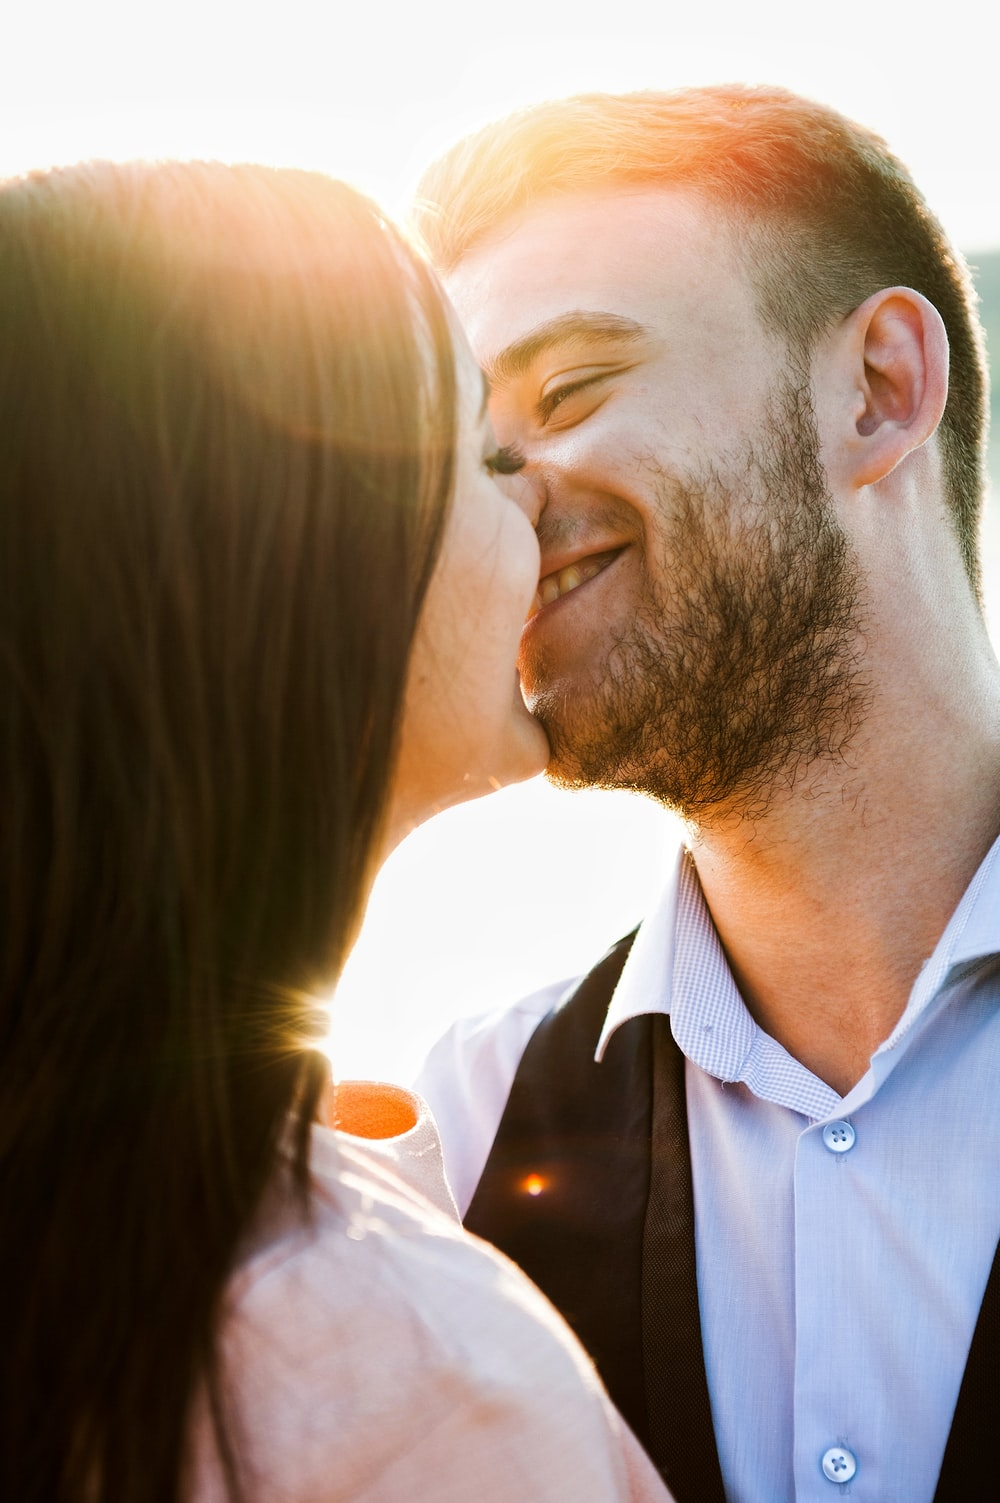 smiling coupe kissing with sun rays during daytime